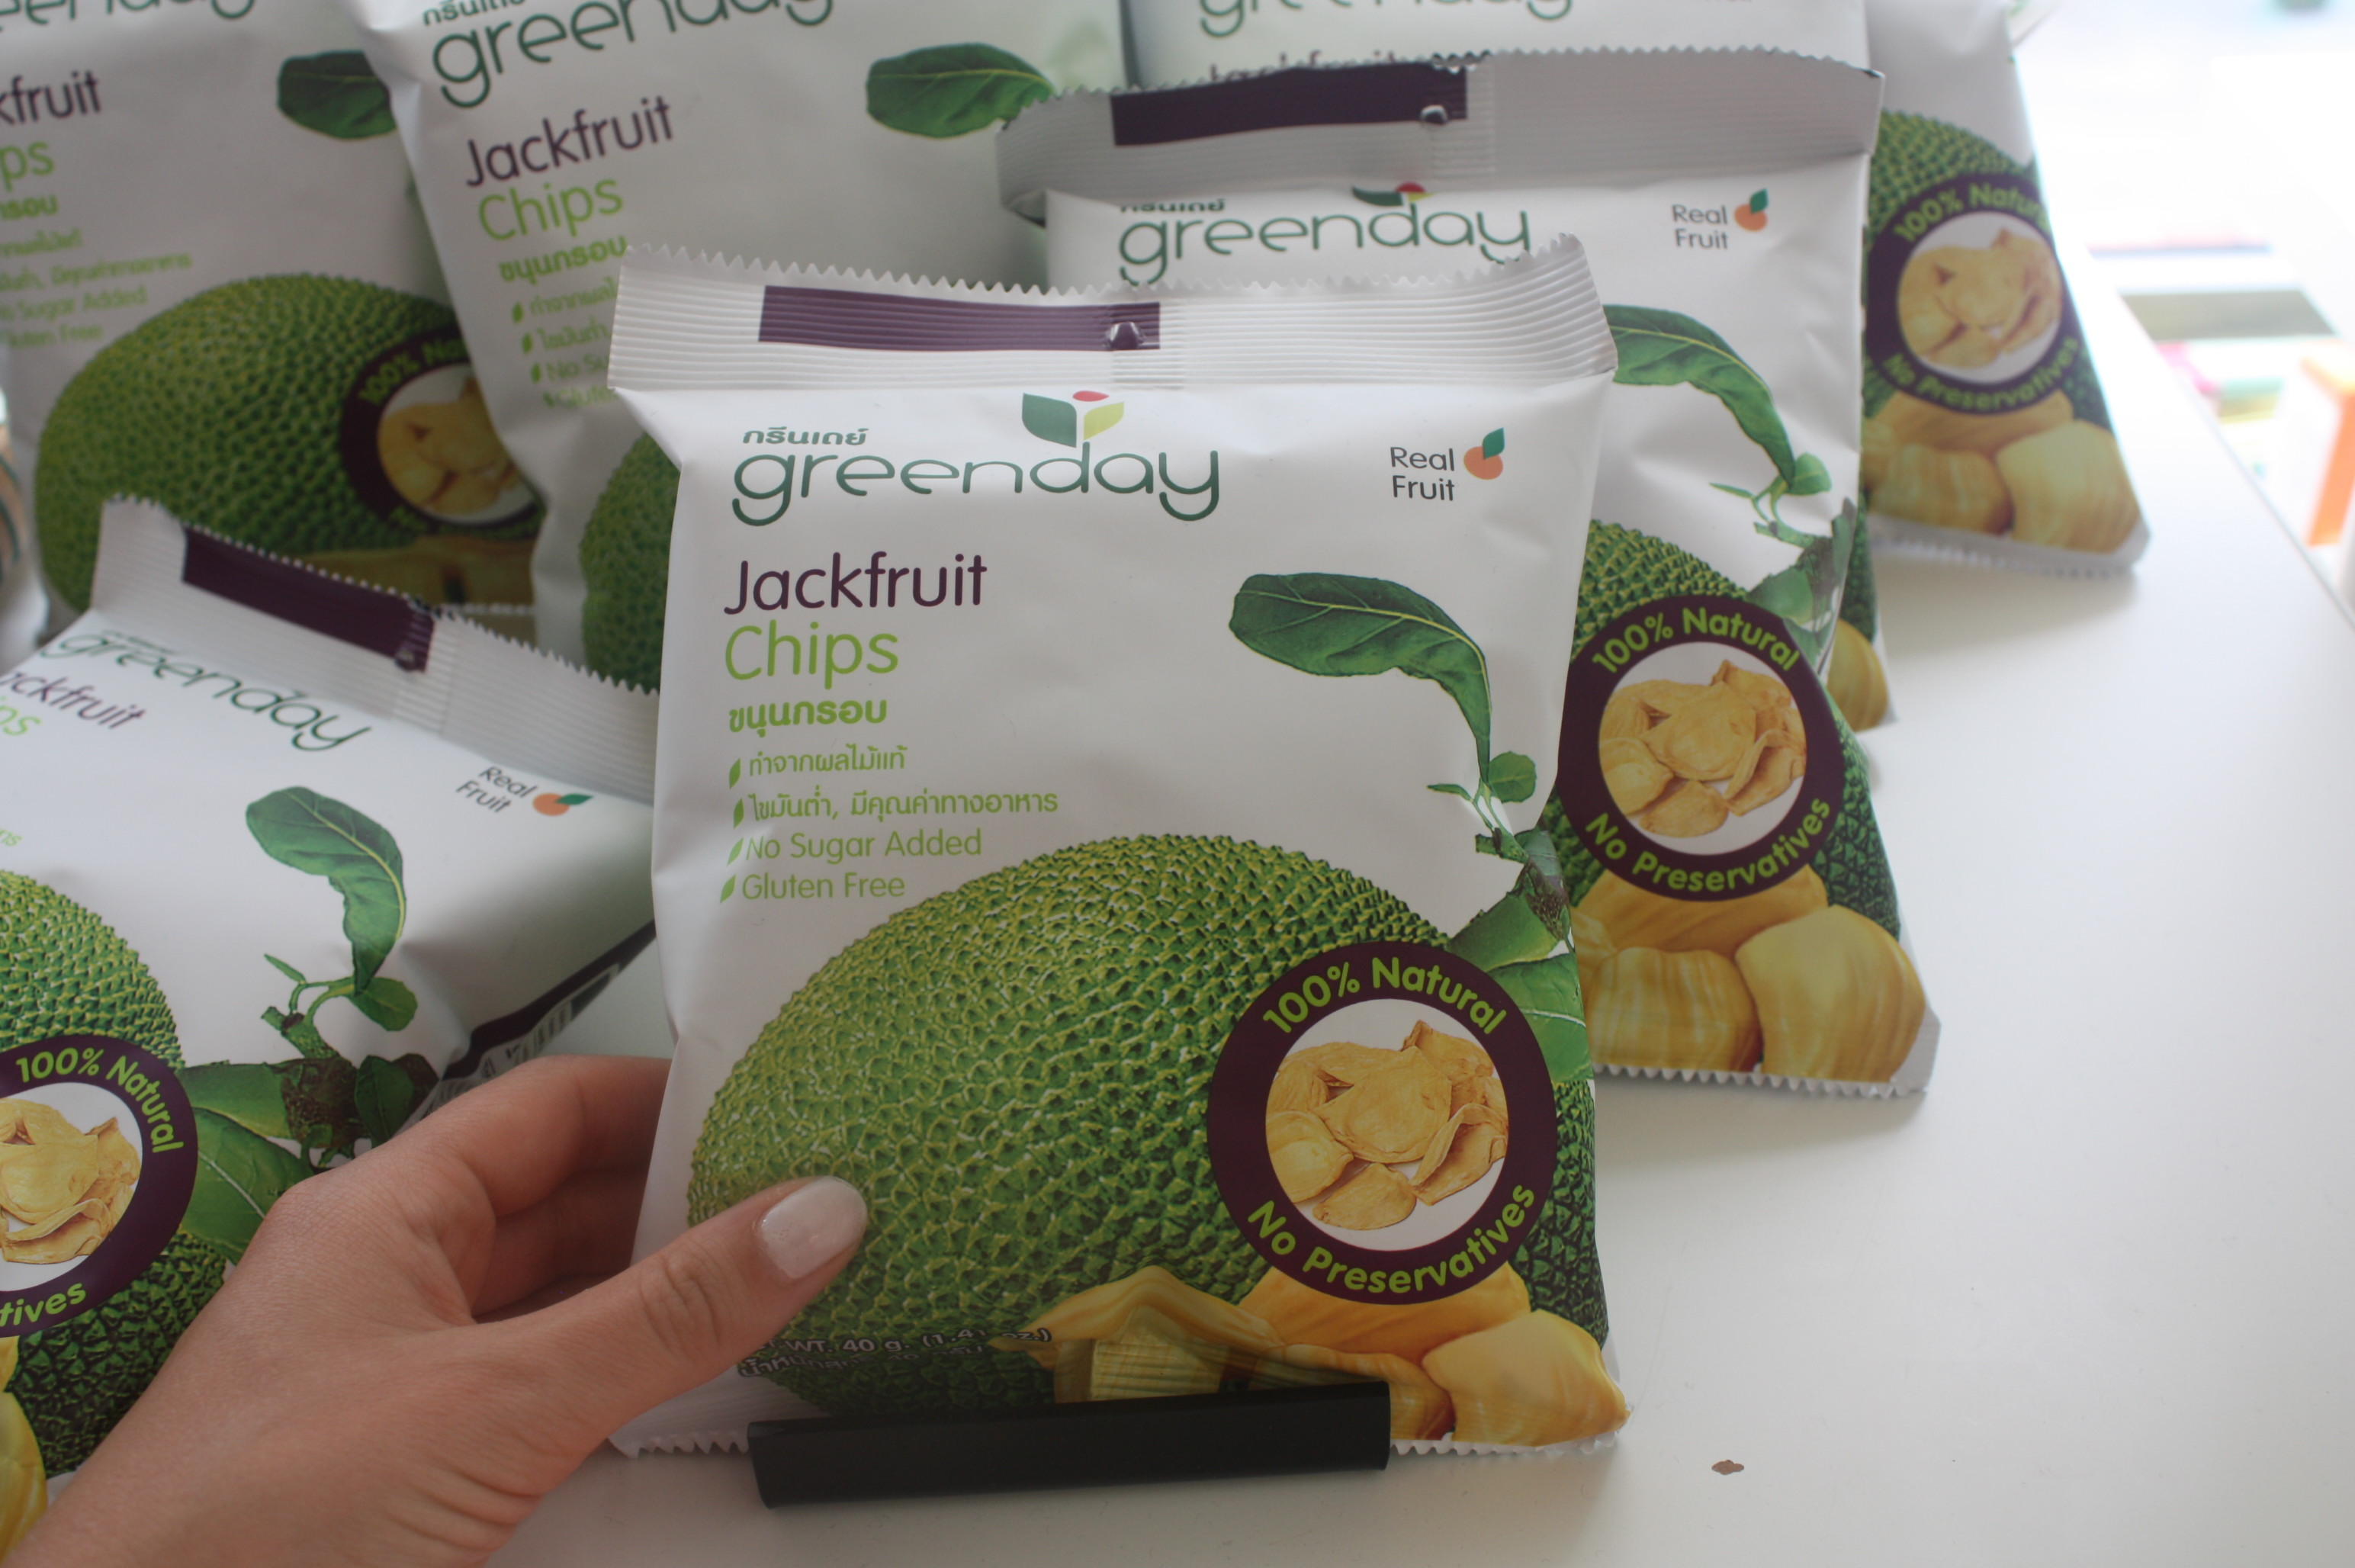 Found Jackfruit Chips!